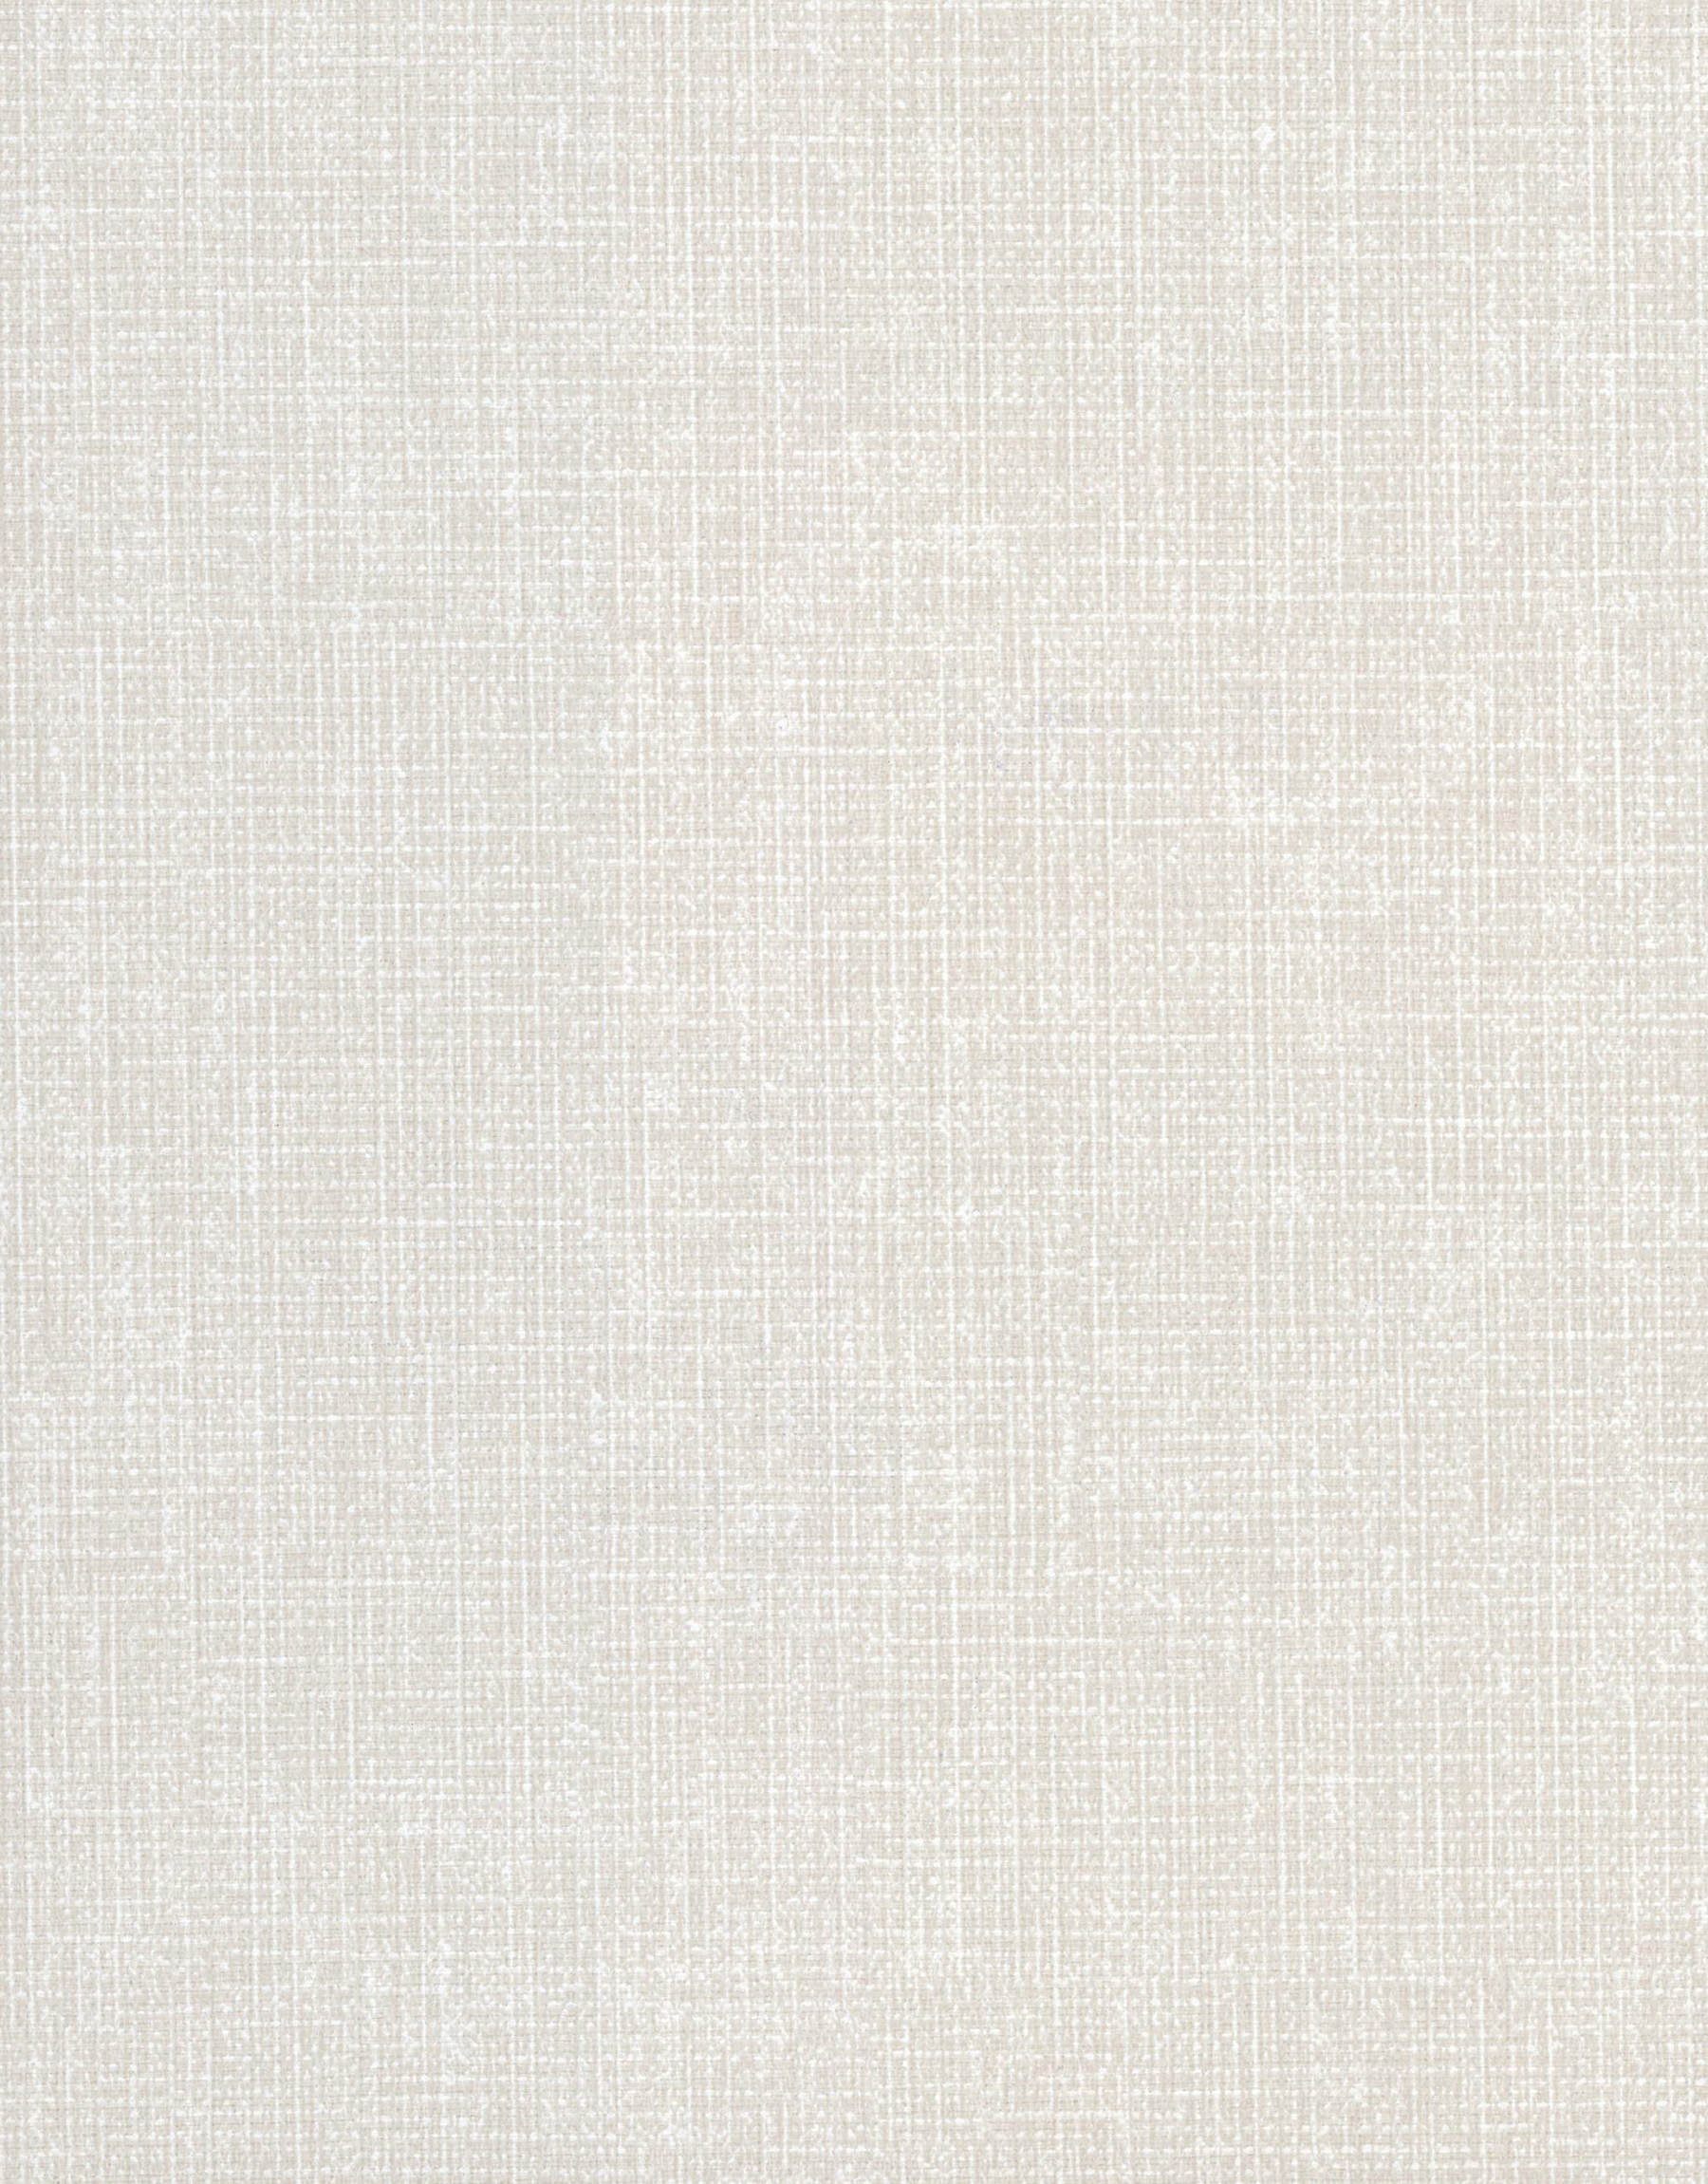 Picture of Arya Ivory Fabric Texture Wallpaper